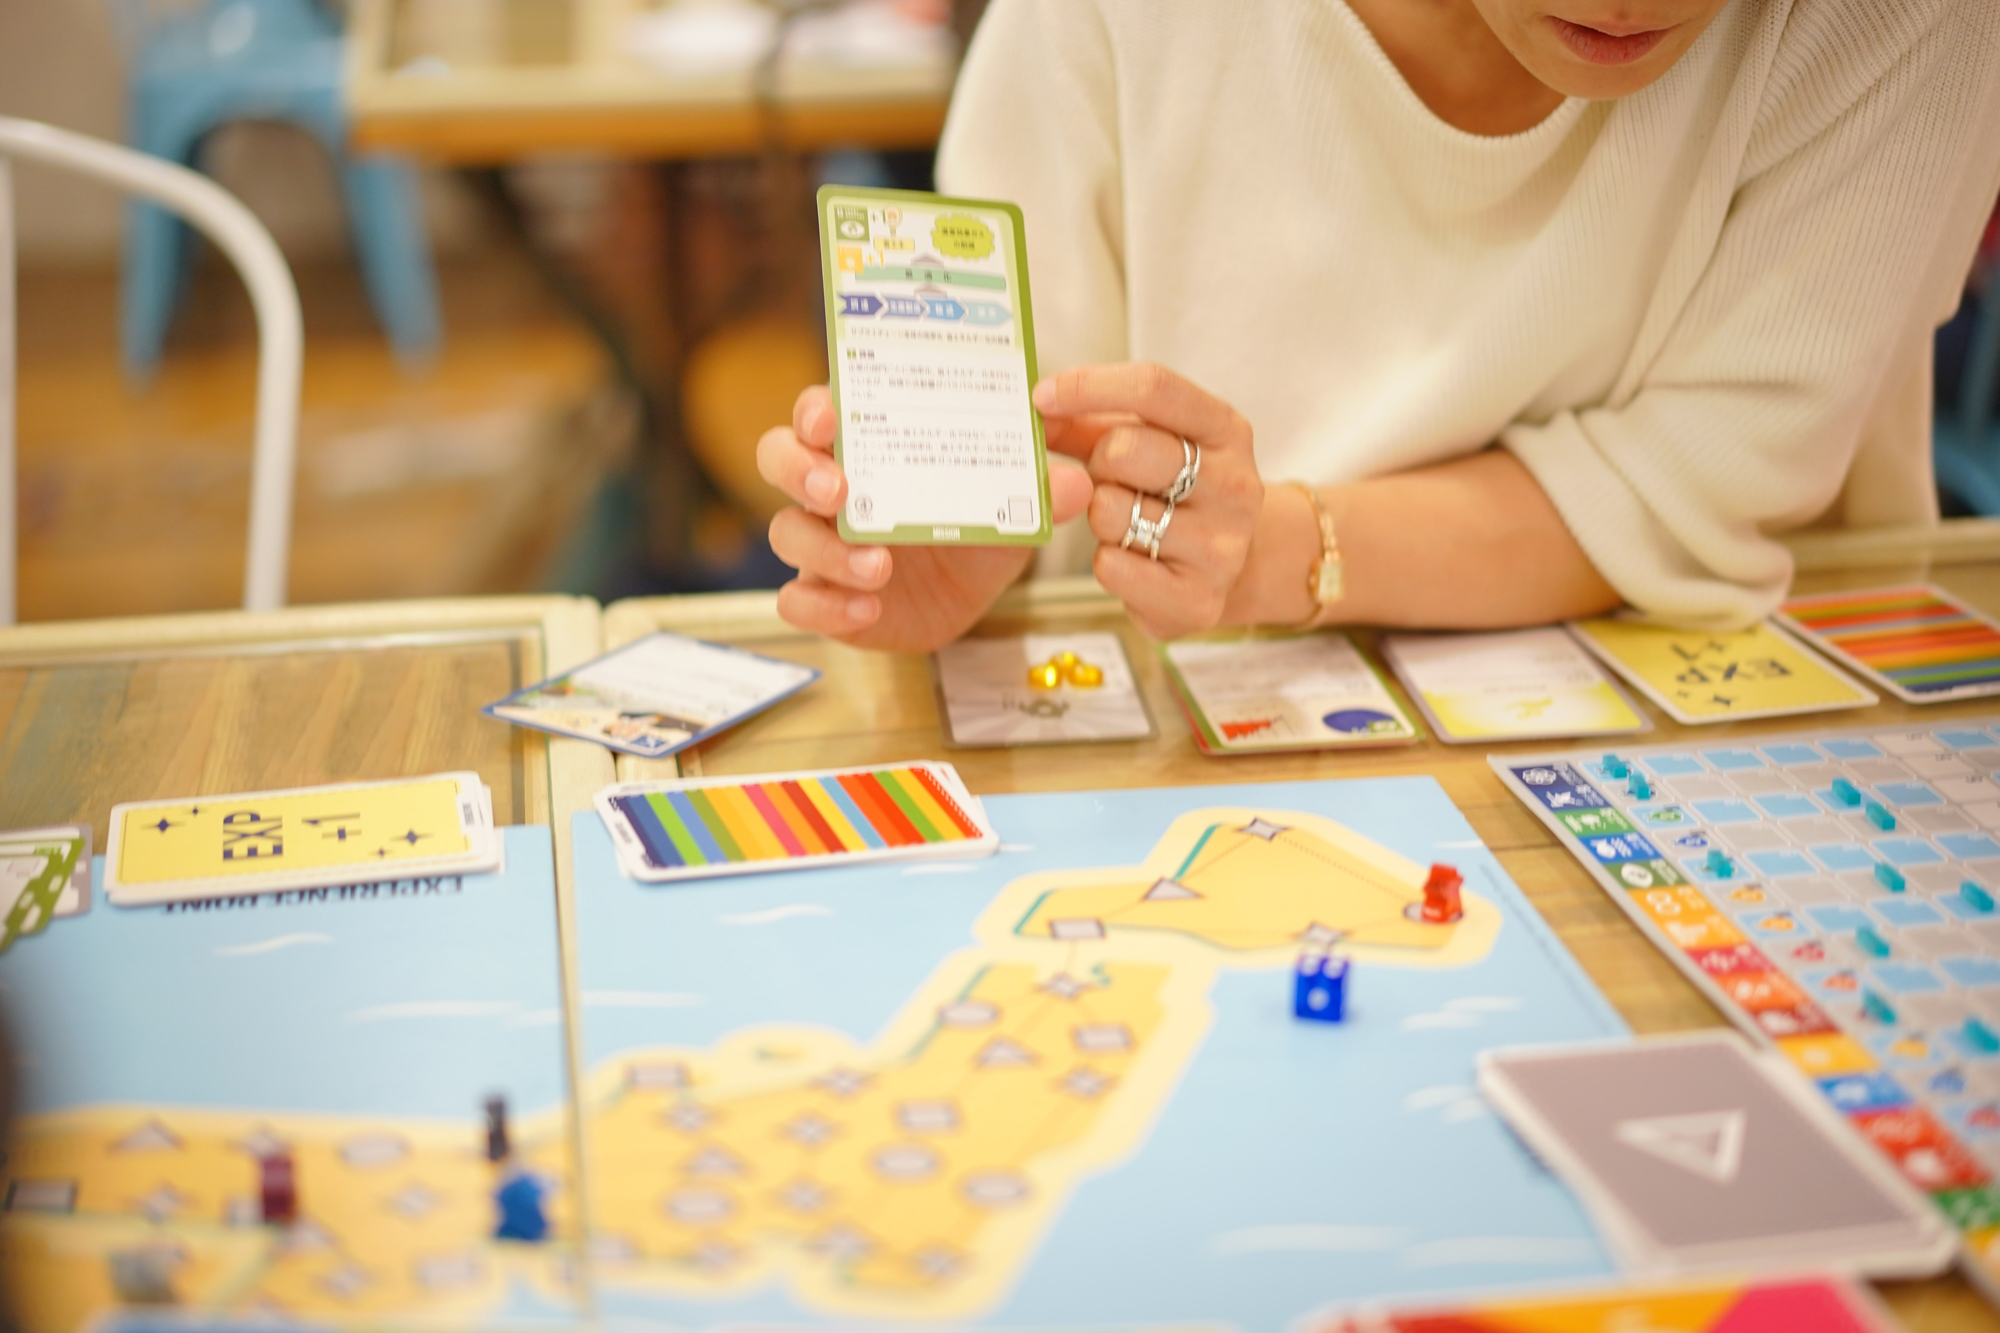 7824【自由テーマ】Sustainable World BOARDGAME